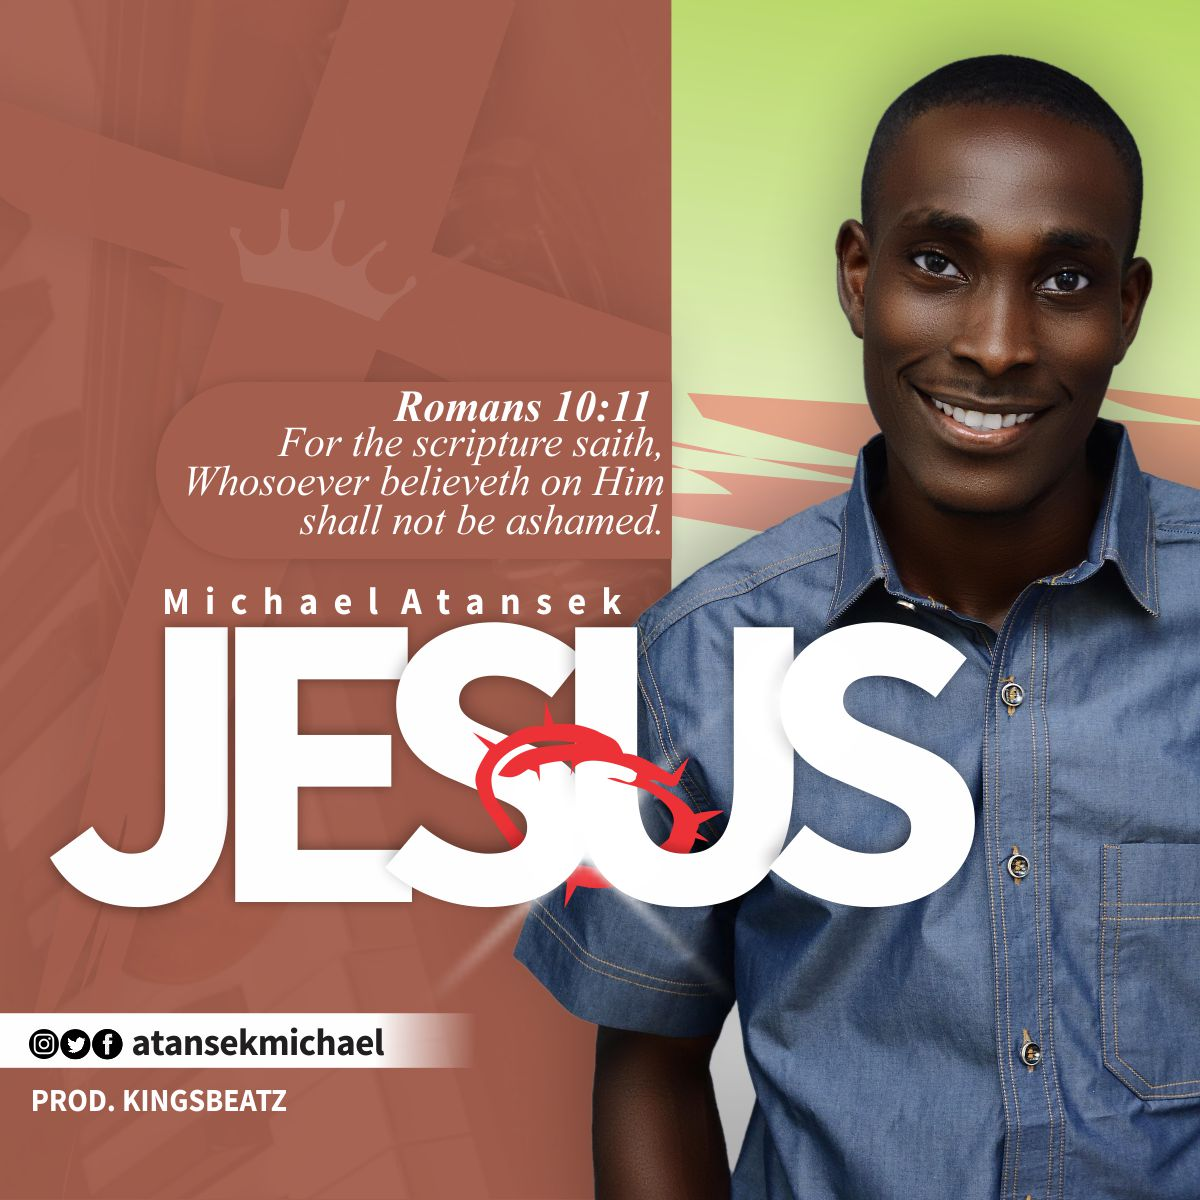 Jesus By Michael Atansek Lyrics And Mp3 Download Christian Music